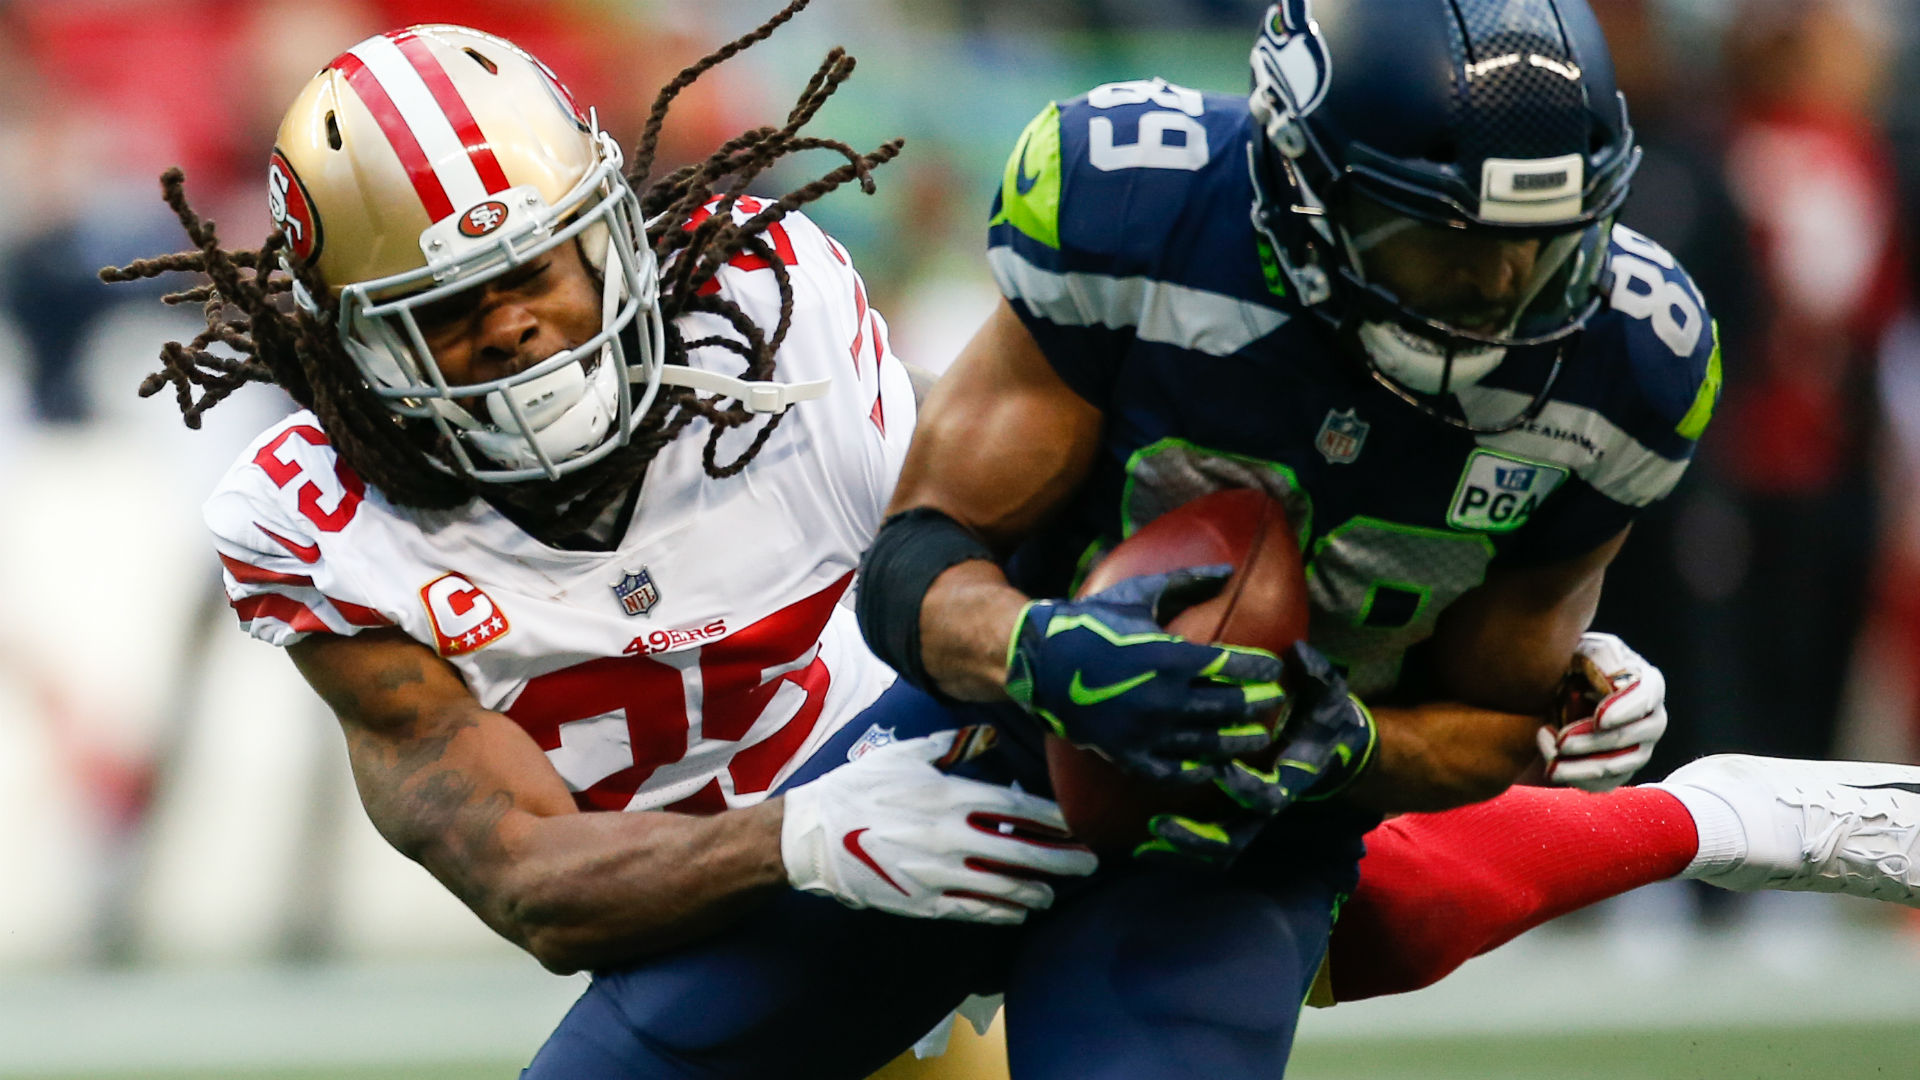 49ers CB Richard Sherman wants to transition to safety by the end of his career